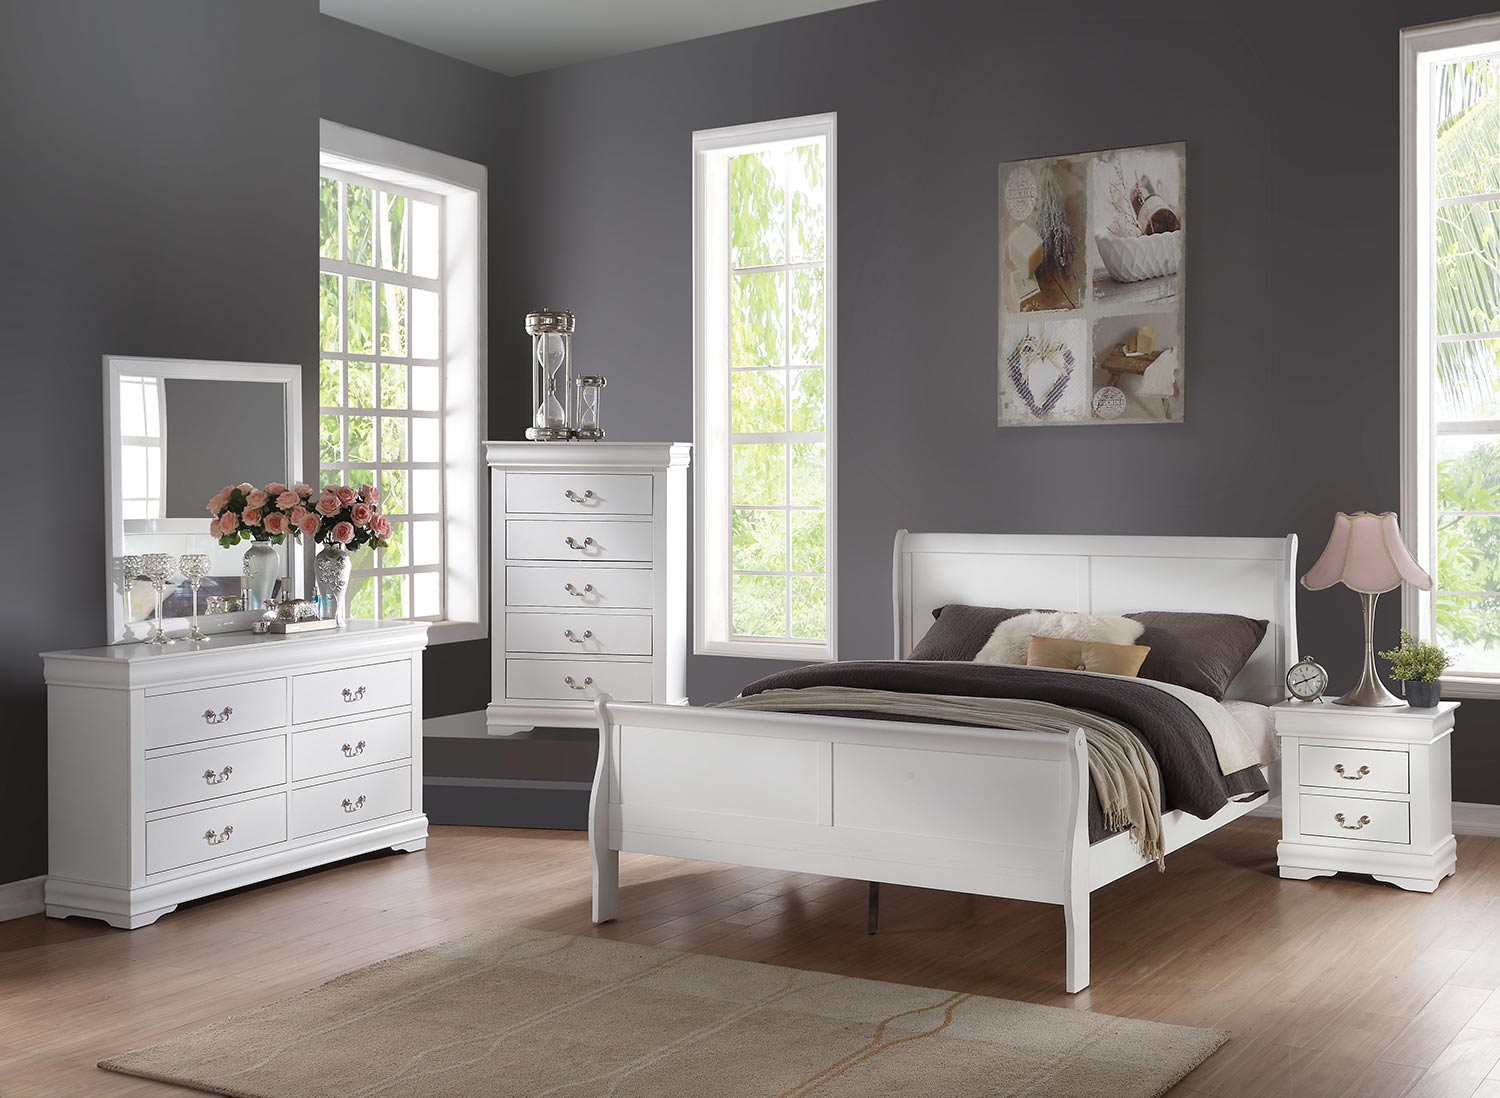 Acme Louis Philippe Bedroom Set - White